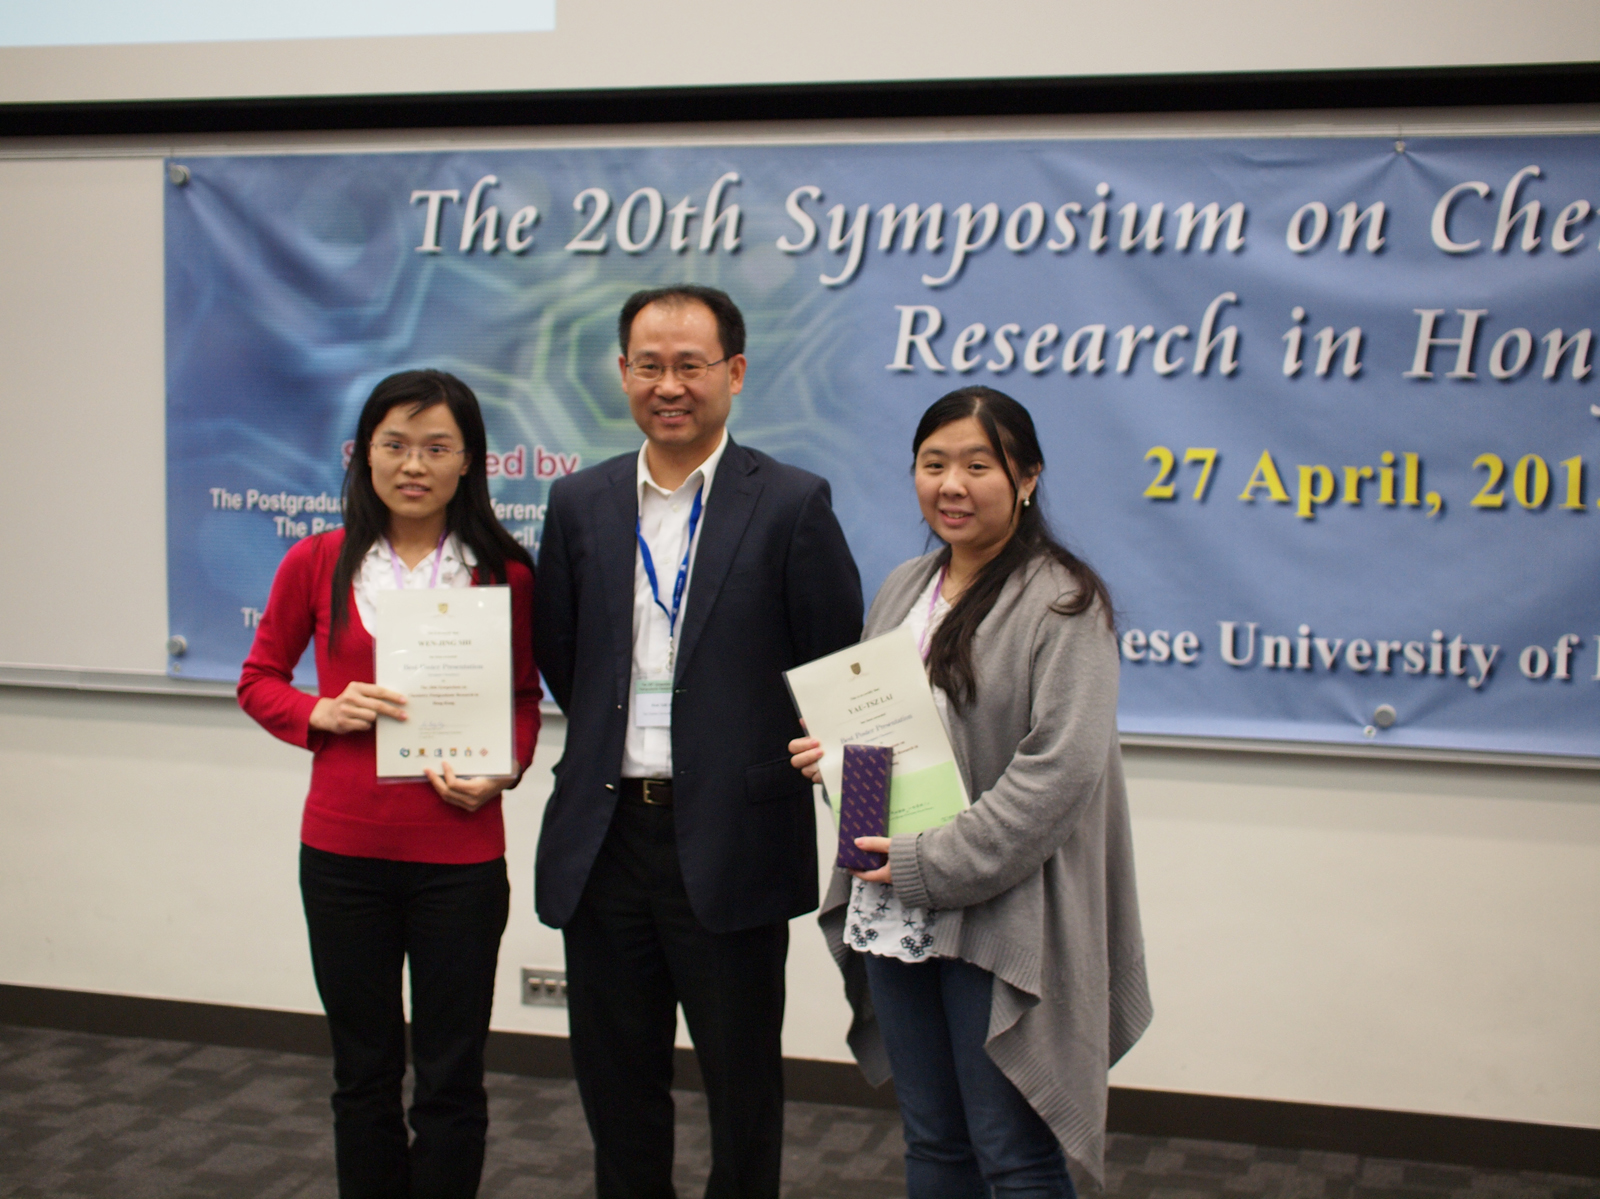 Ms. Shi Wen-Jing has won the Best Poster Award in Inorganic Chemistry at the 20th Symposium on Chemistry Postgraduate Research in Hong Kong